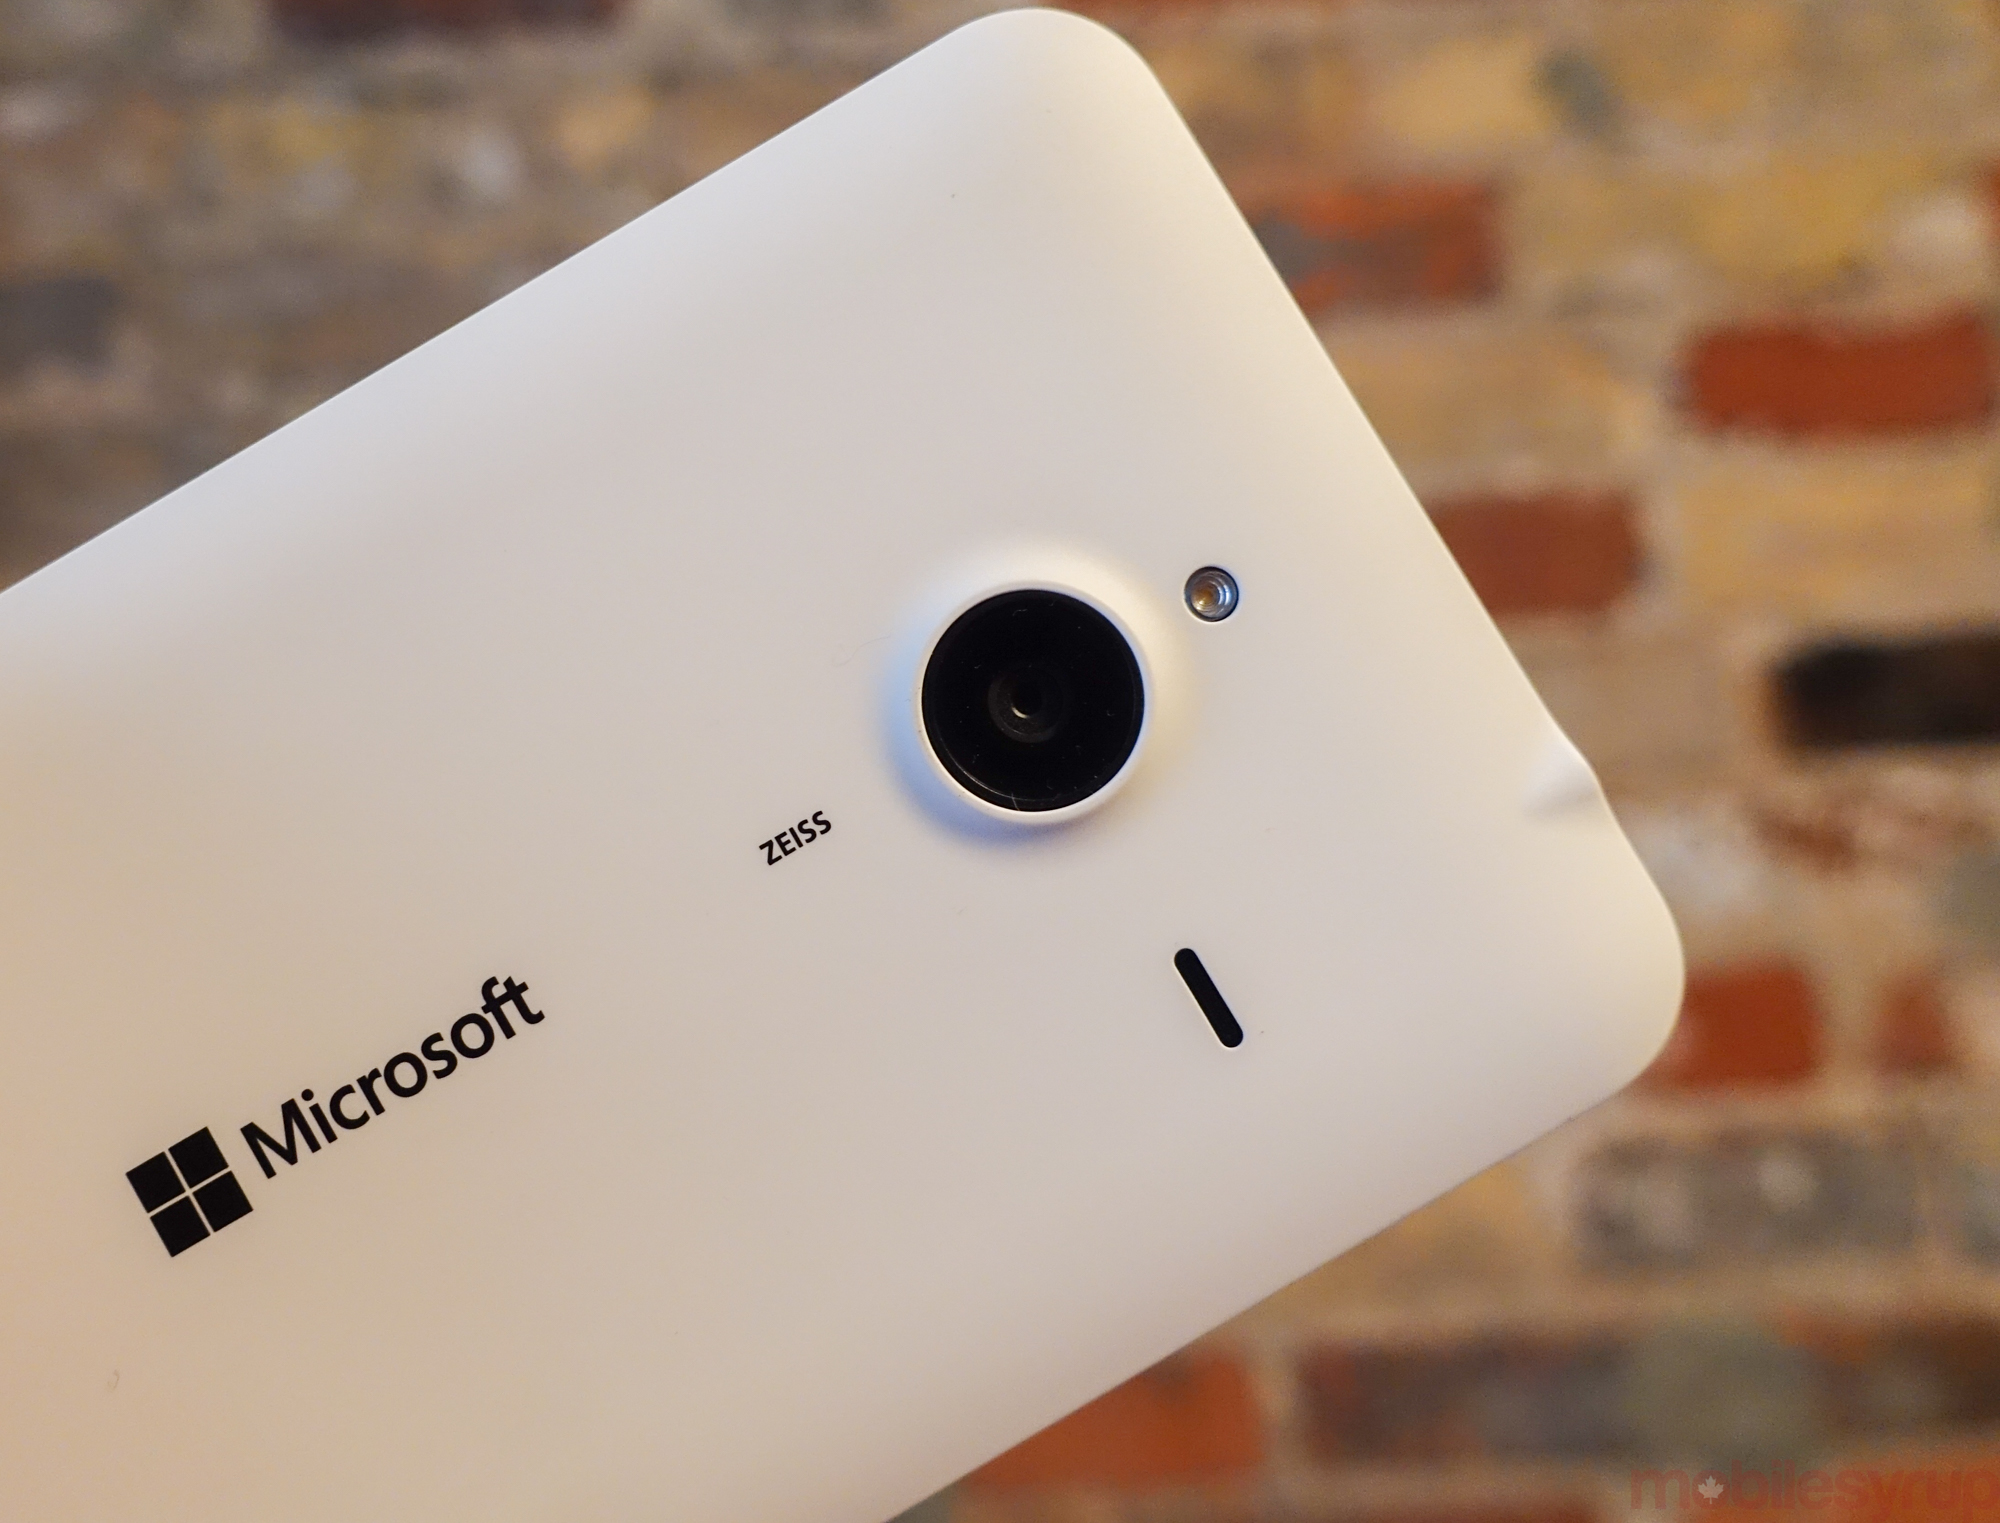 New details leak about upcoming Windows 10 Mobile devices